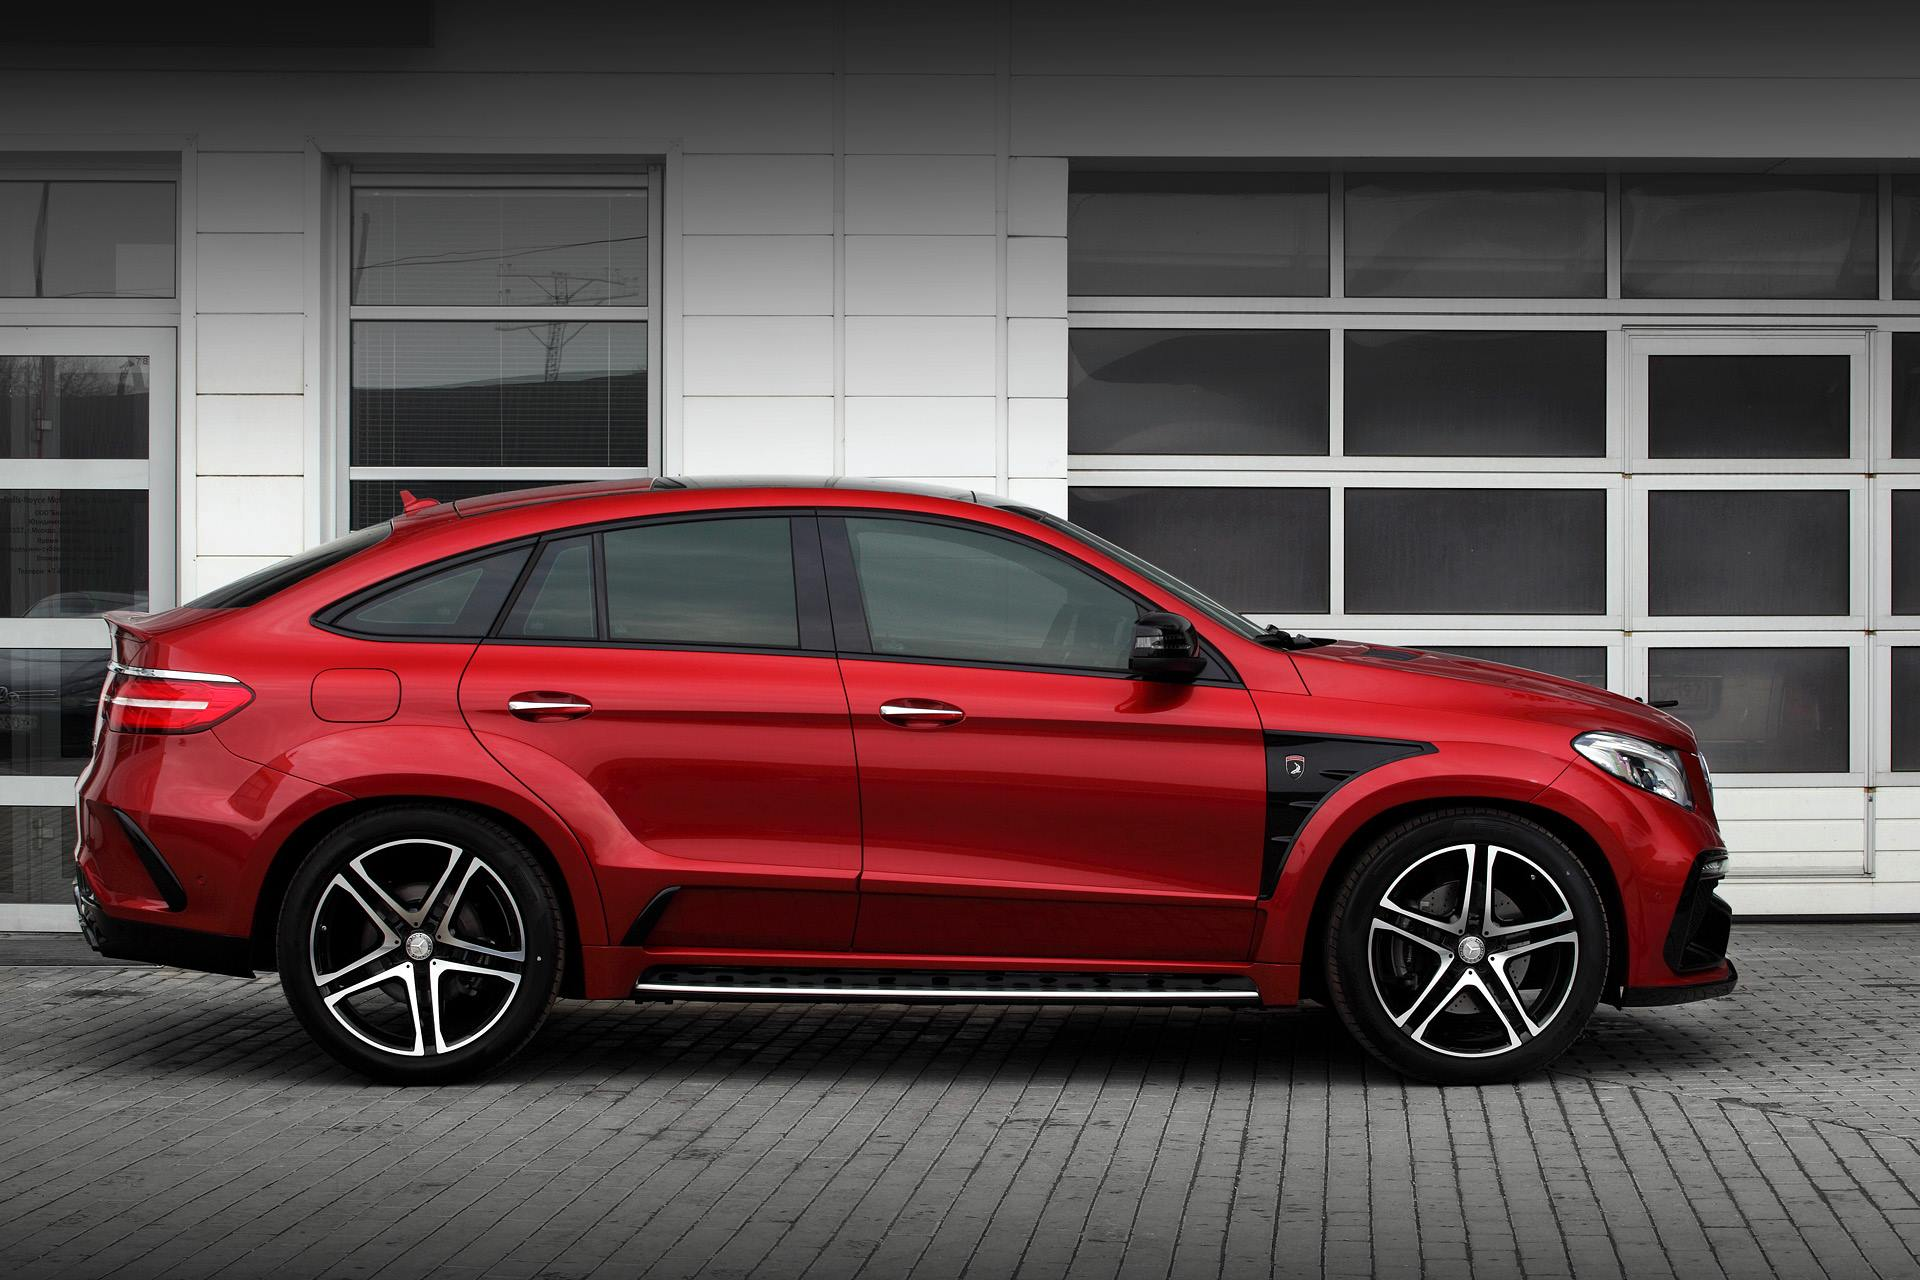 Mercedes Gle 450 Amg Coupe Gets Inferno Tuning From Topcar